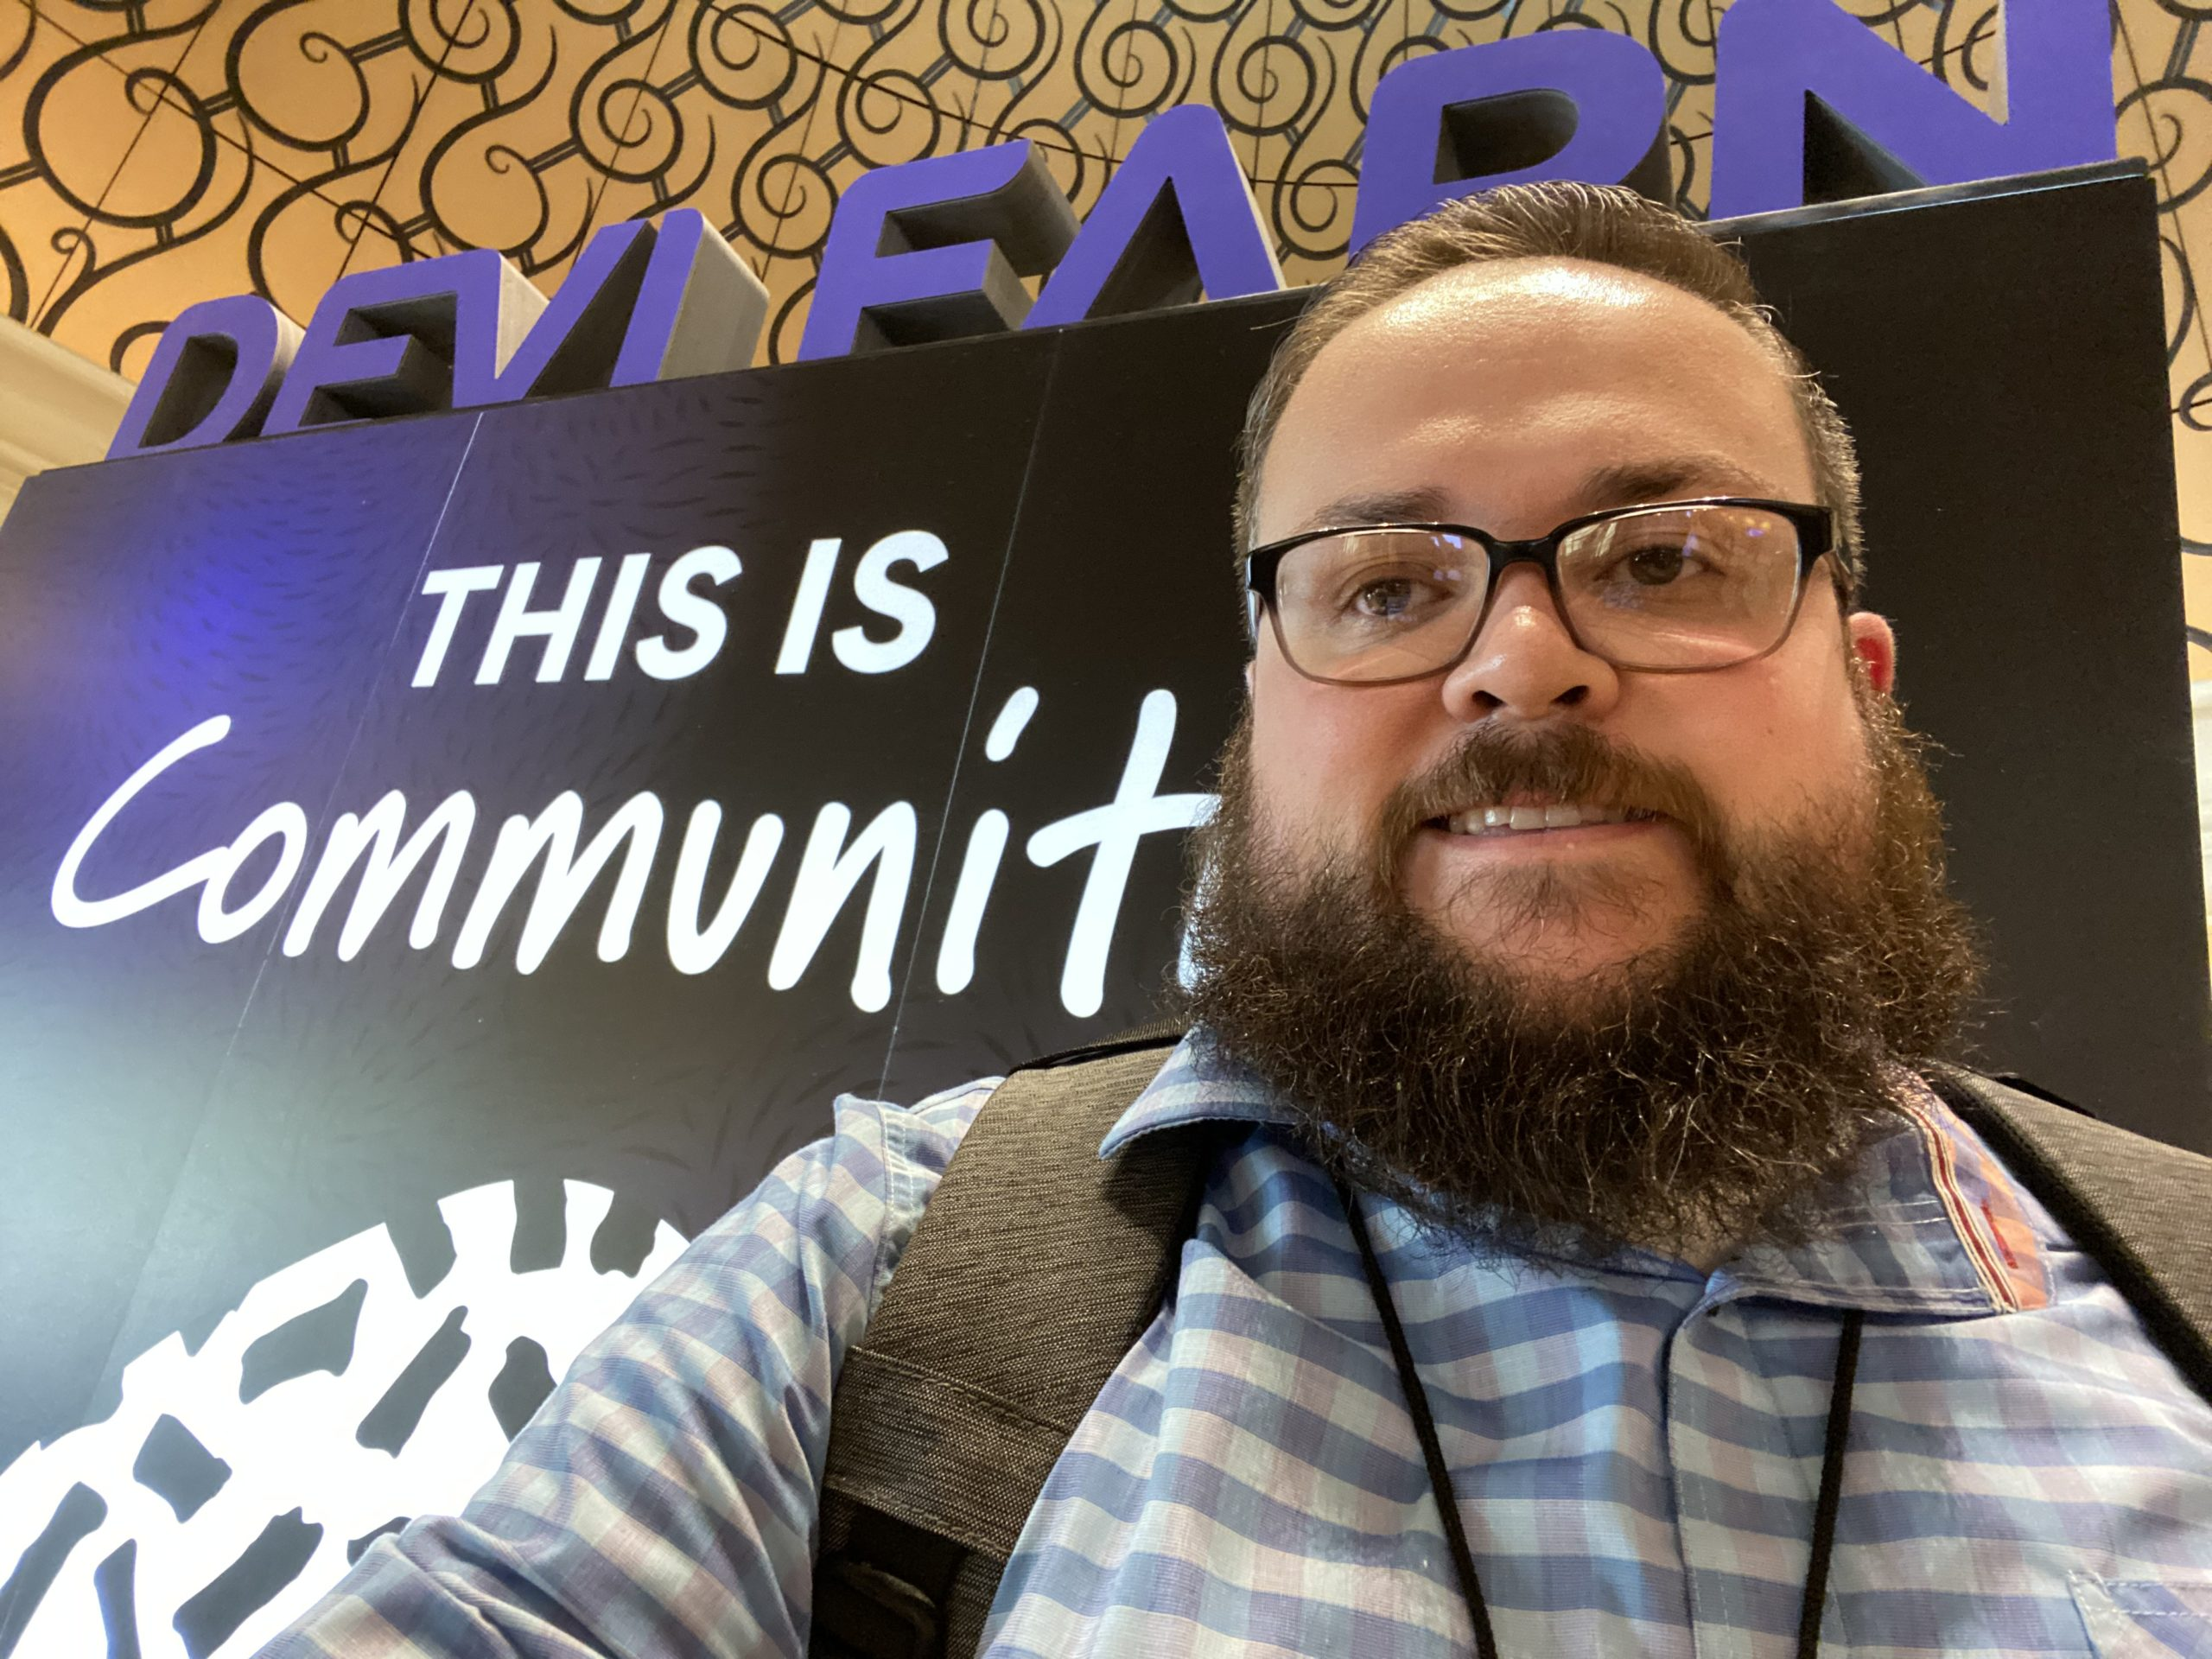 me standing in front of the devlearn this is community sign